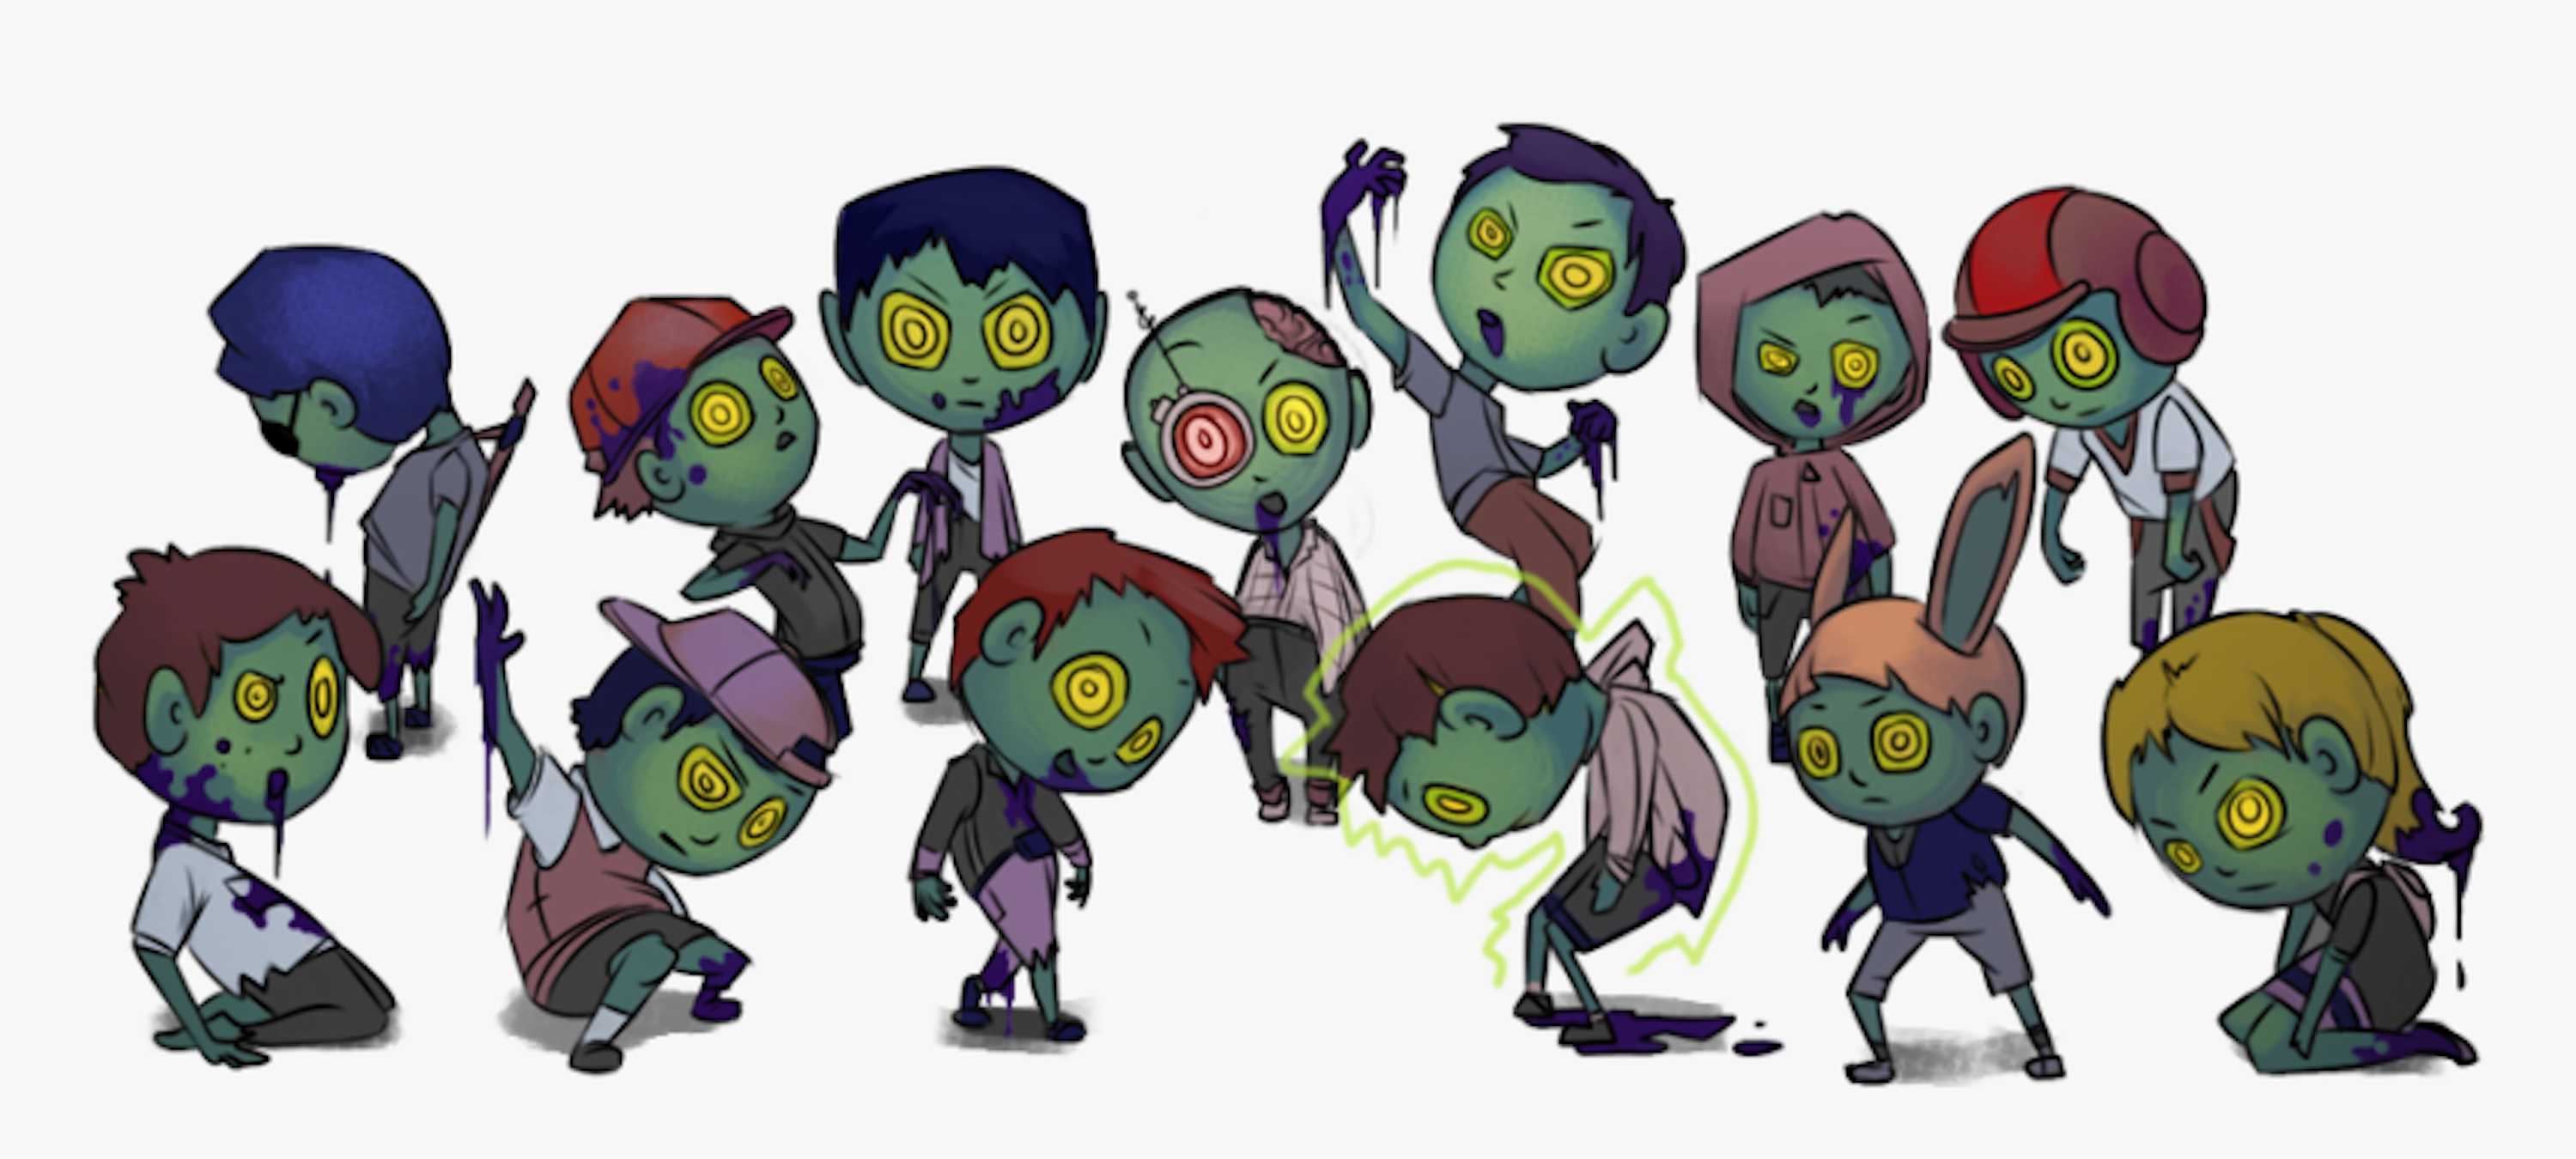 156-1563795_zombie-clipart-zombie-horde-zombie-hoarde-cartoon-hd